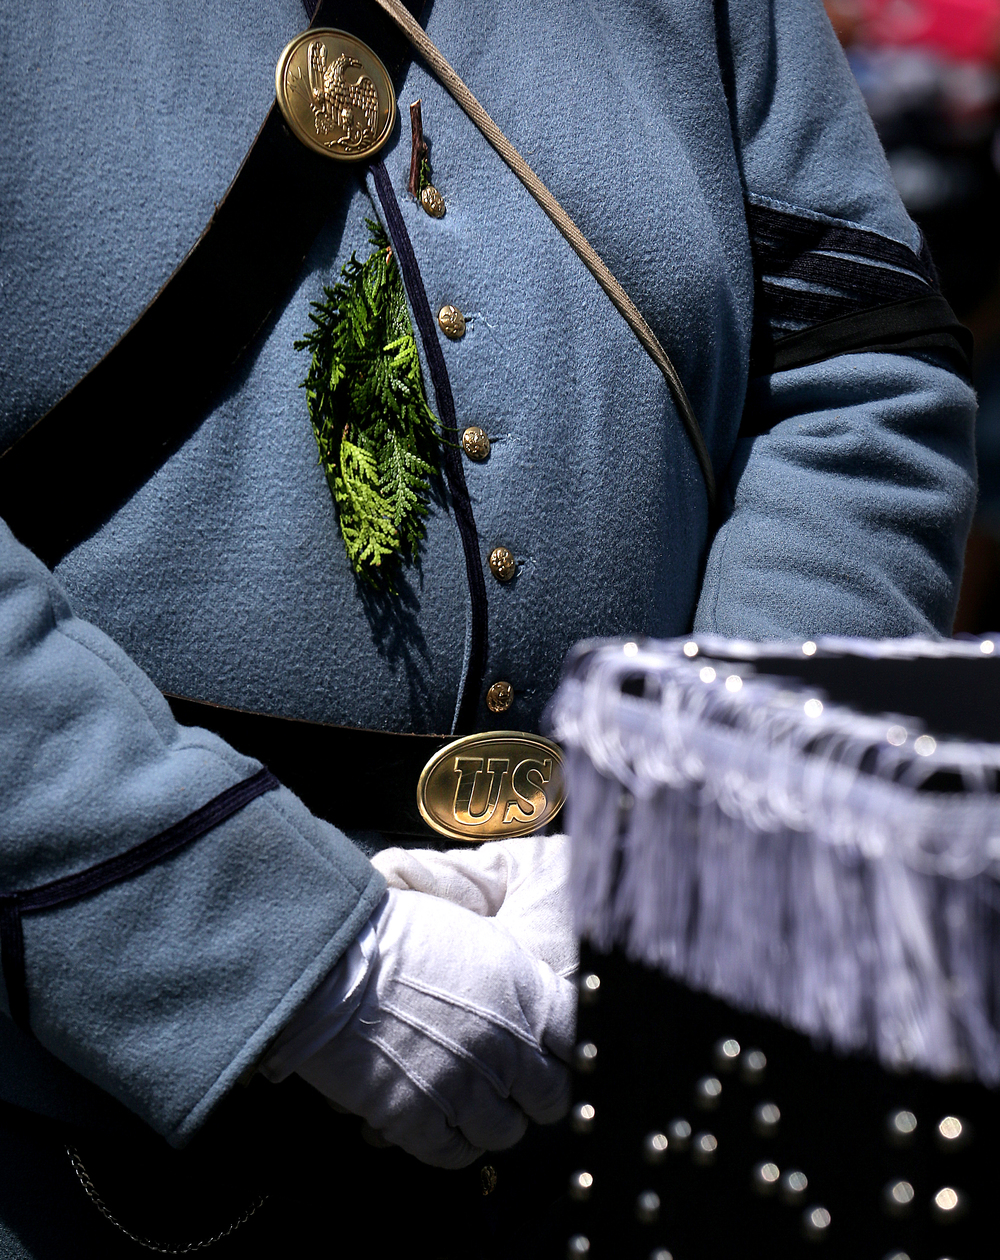 Marcus Petrella, 8th Veteran Reserve Corps, wears a sprig of evergreen tucked between the buttons of his coat. Petrella helped move the Lincoln coffin into the hearse at the conclusion of the vigil Sunday morning. David Spencer/The State Journal-Register